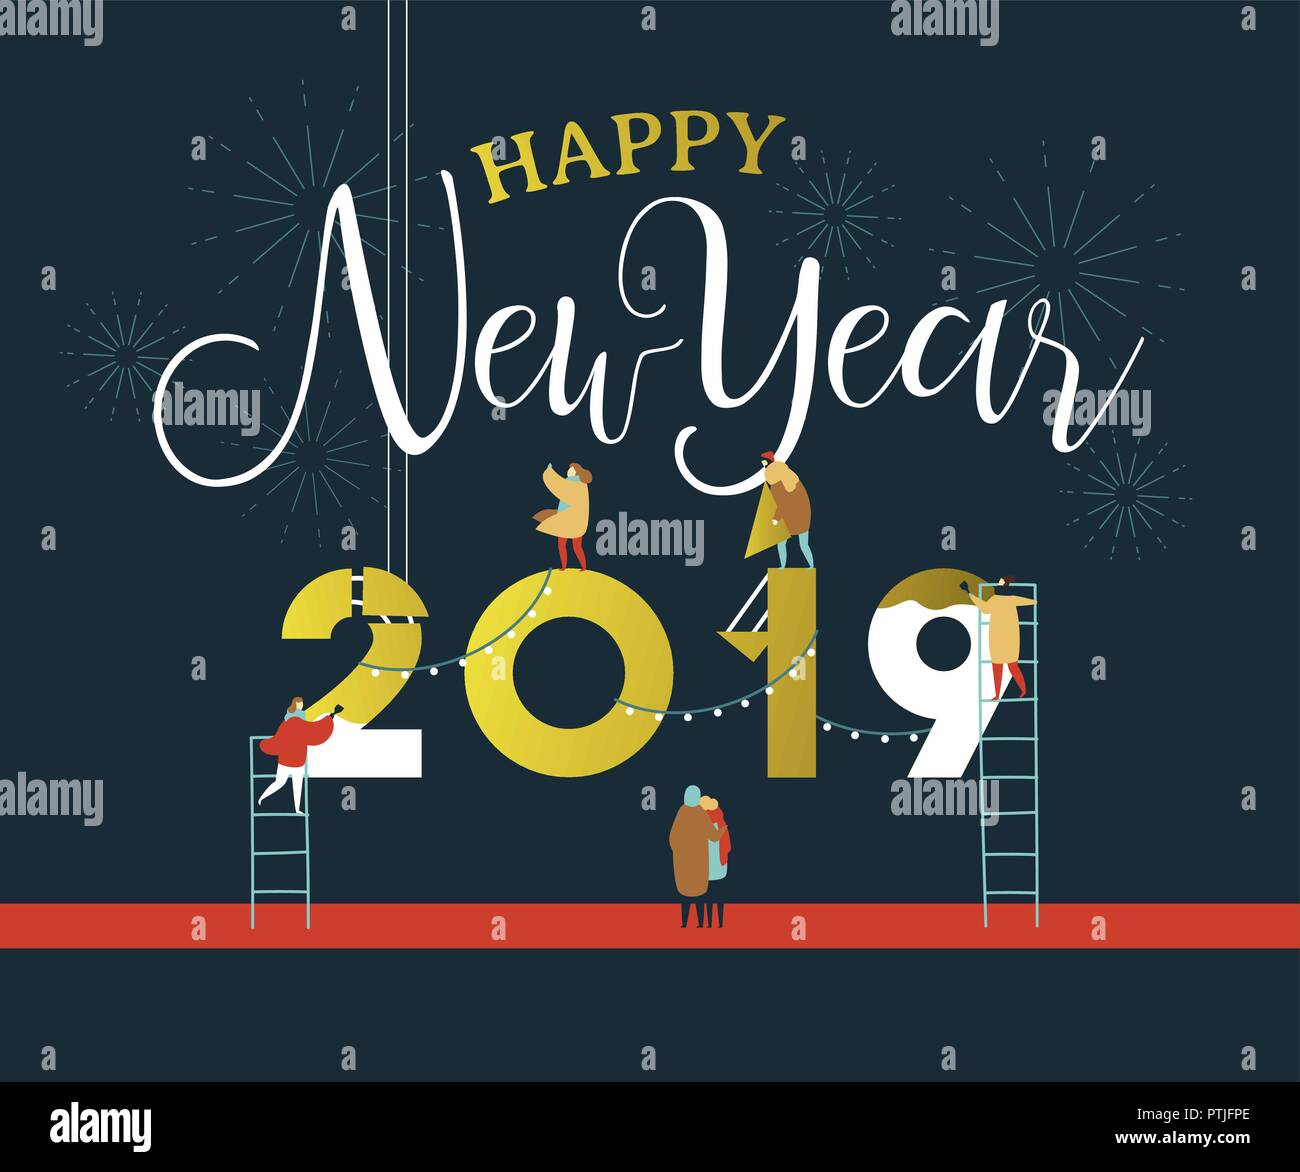 happy new year greeting card illustration for celebration event with fun people group building 2019 sign together on firework night sky eps10 vector